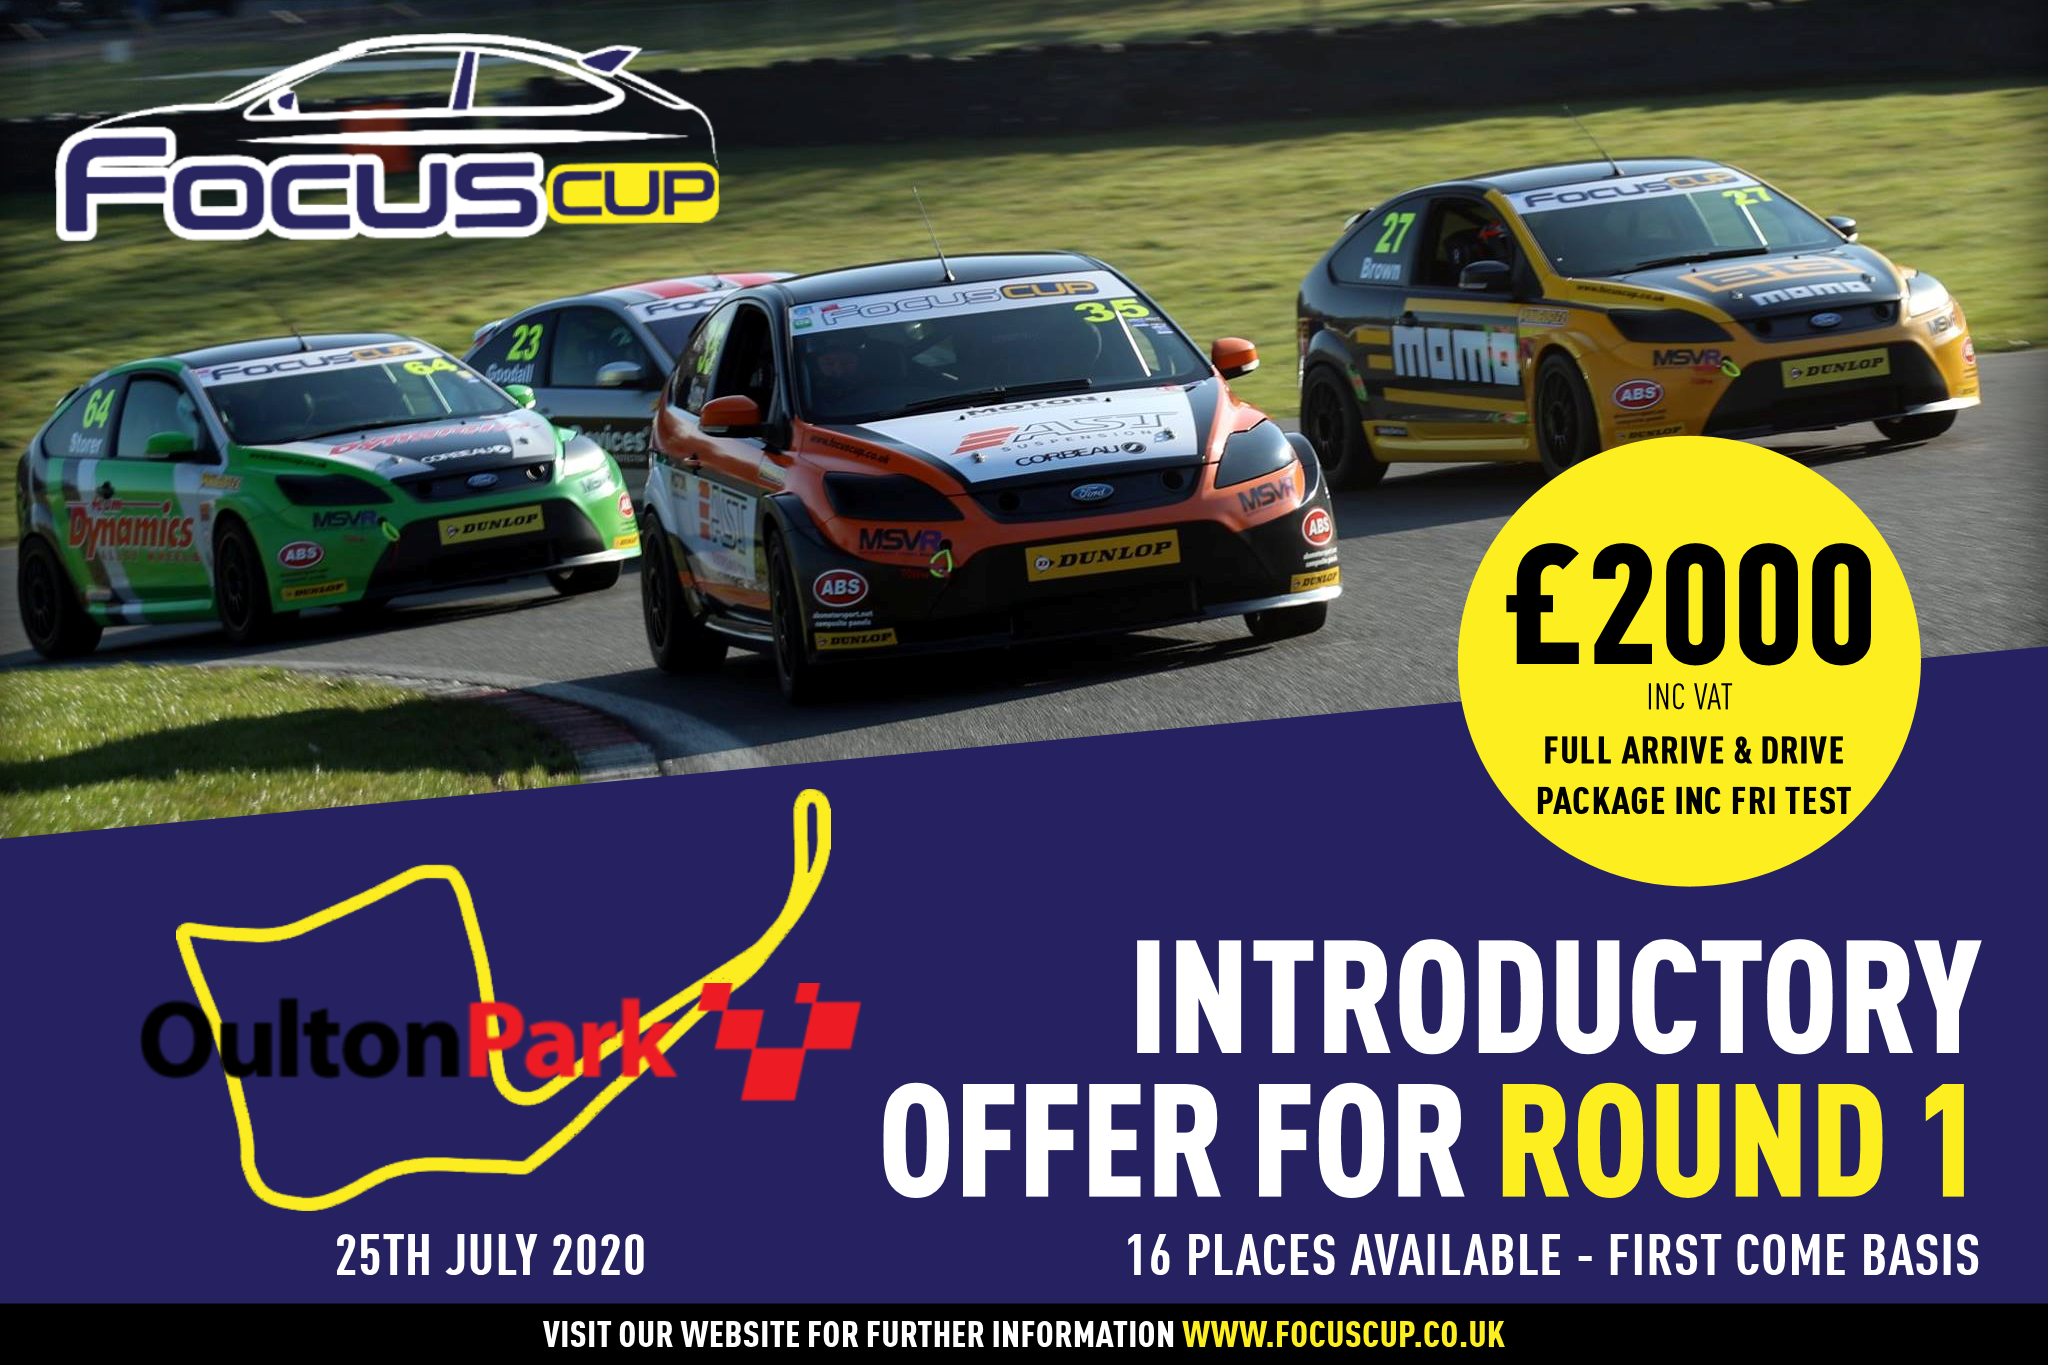 Introductory Offer For Round 1